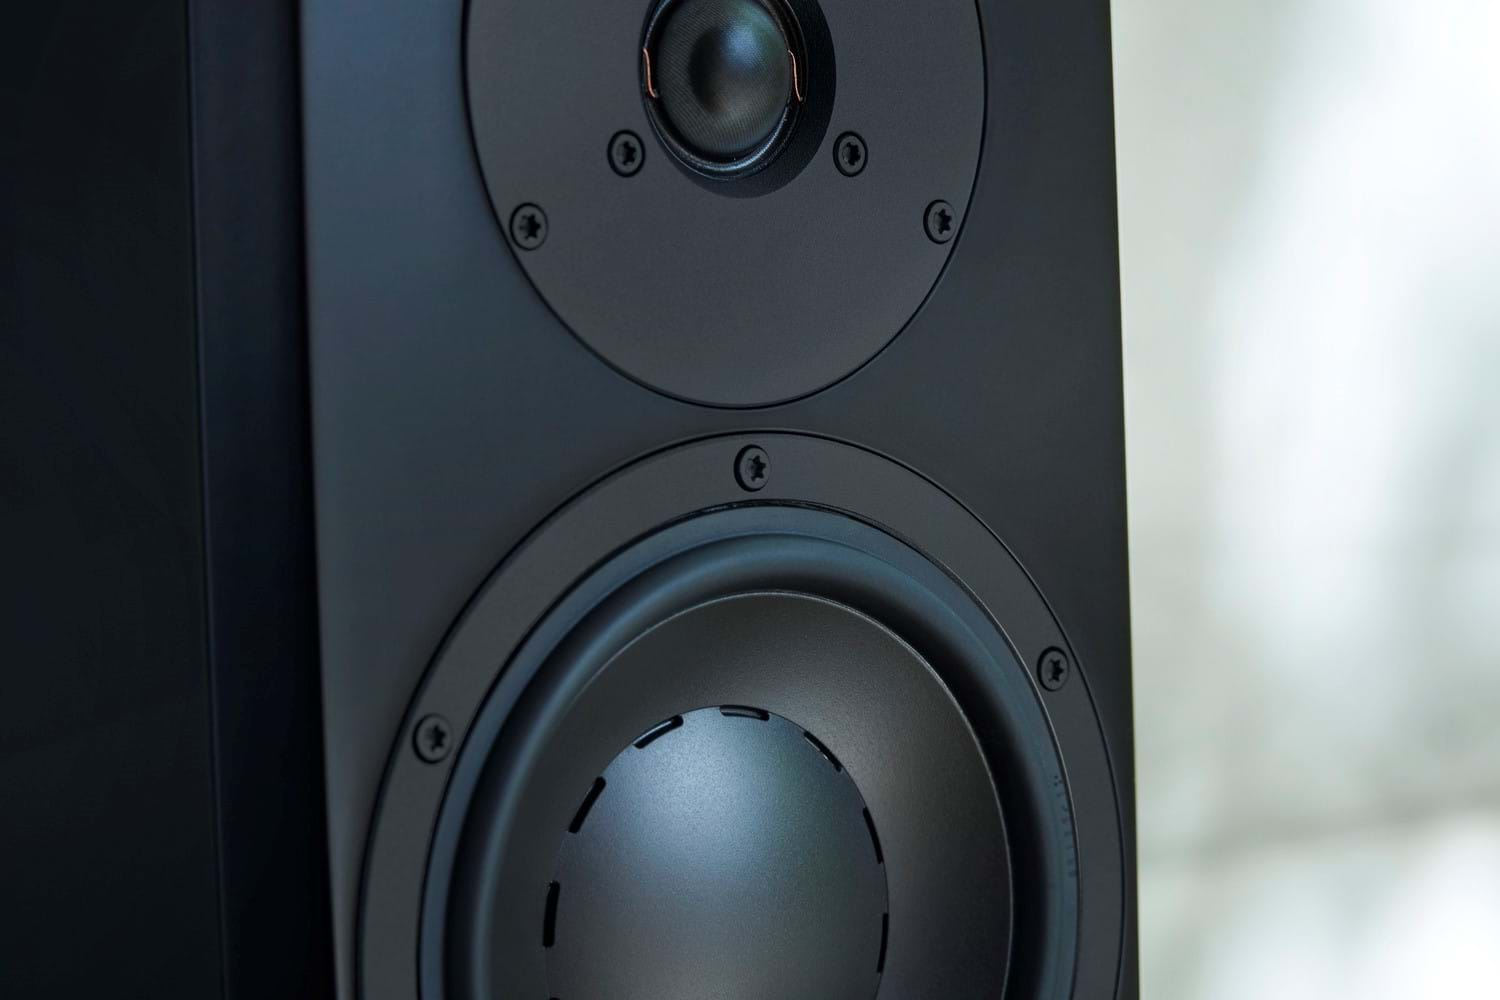 Dynaudio_FocusXD_Detaljer_MJ_15601_SORT.jpg